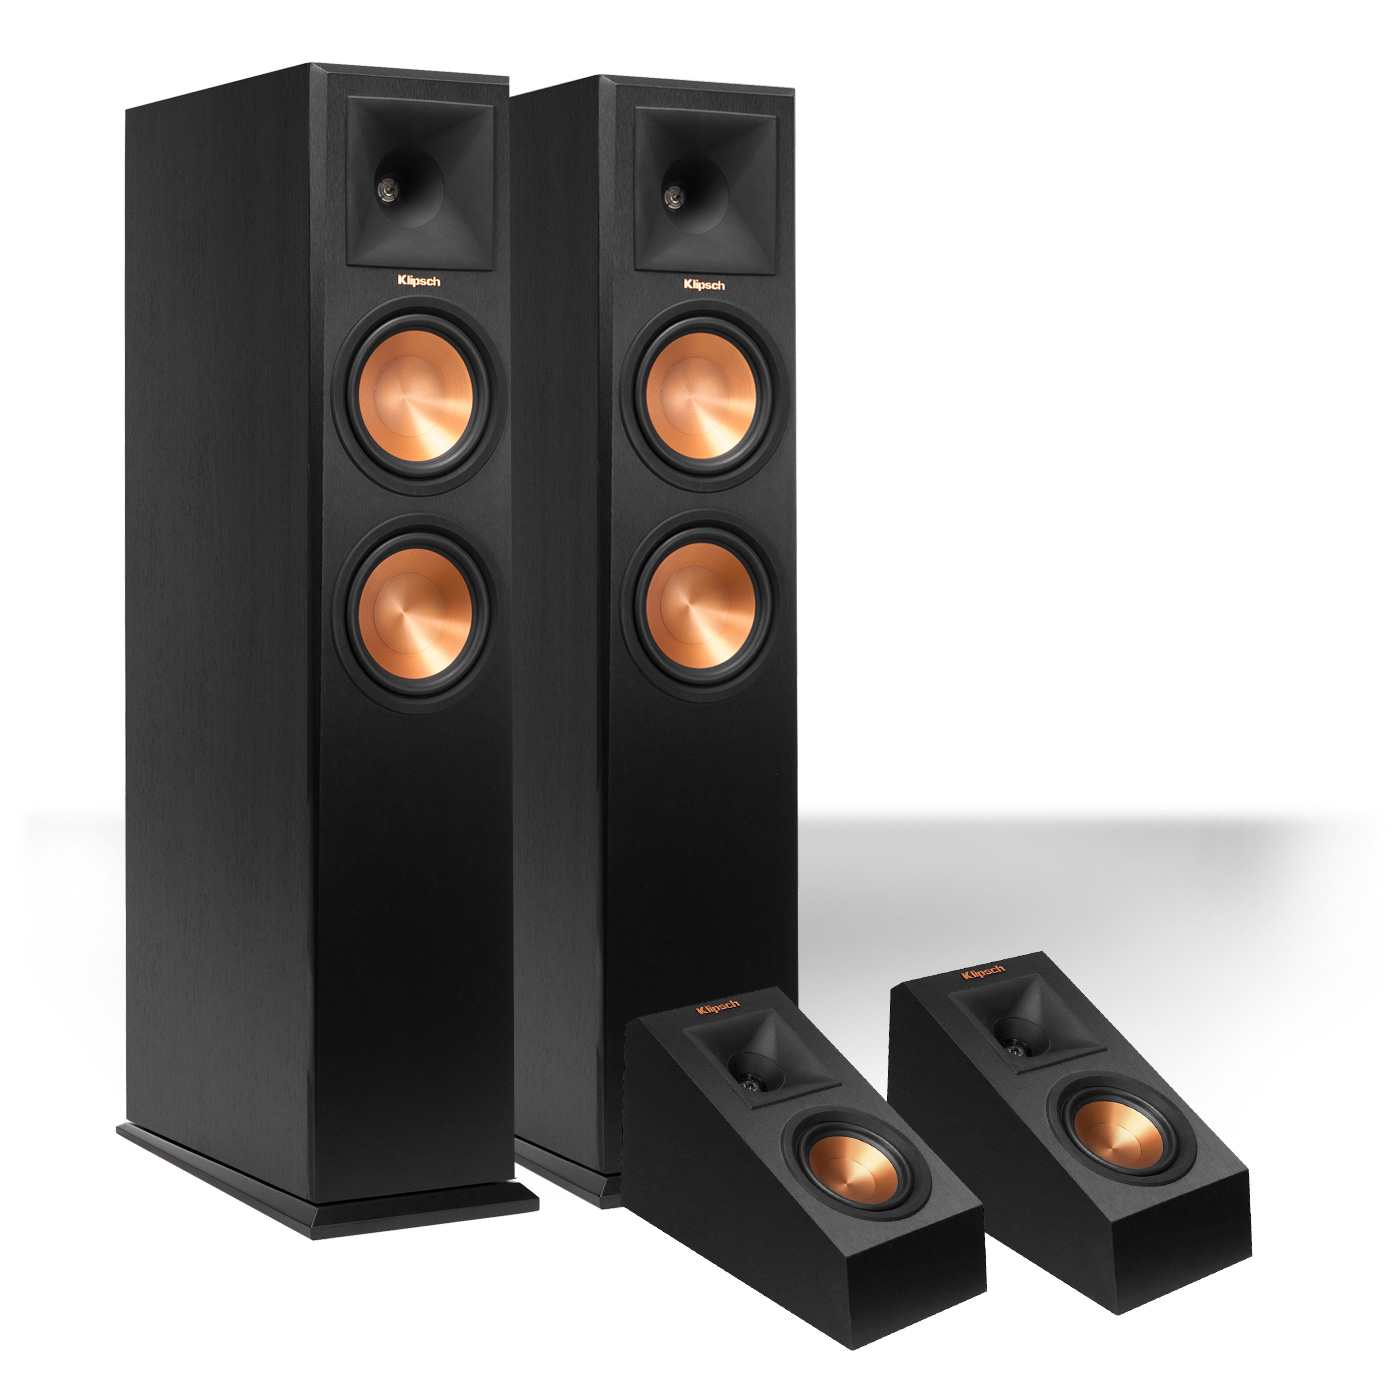 Klipsch RP-260F Reference Premiere Floorstanding Speaker with RP-140SA Add-On Dolby Atmos Enabled Elevation Speakers by Klipsch